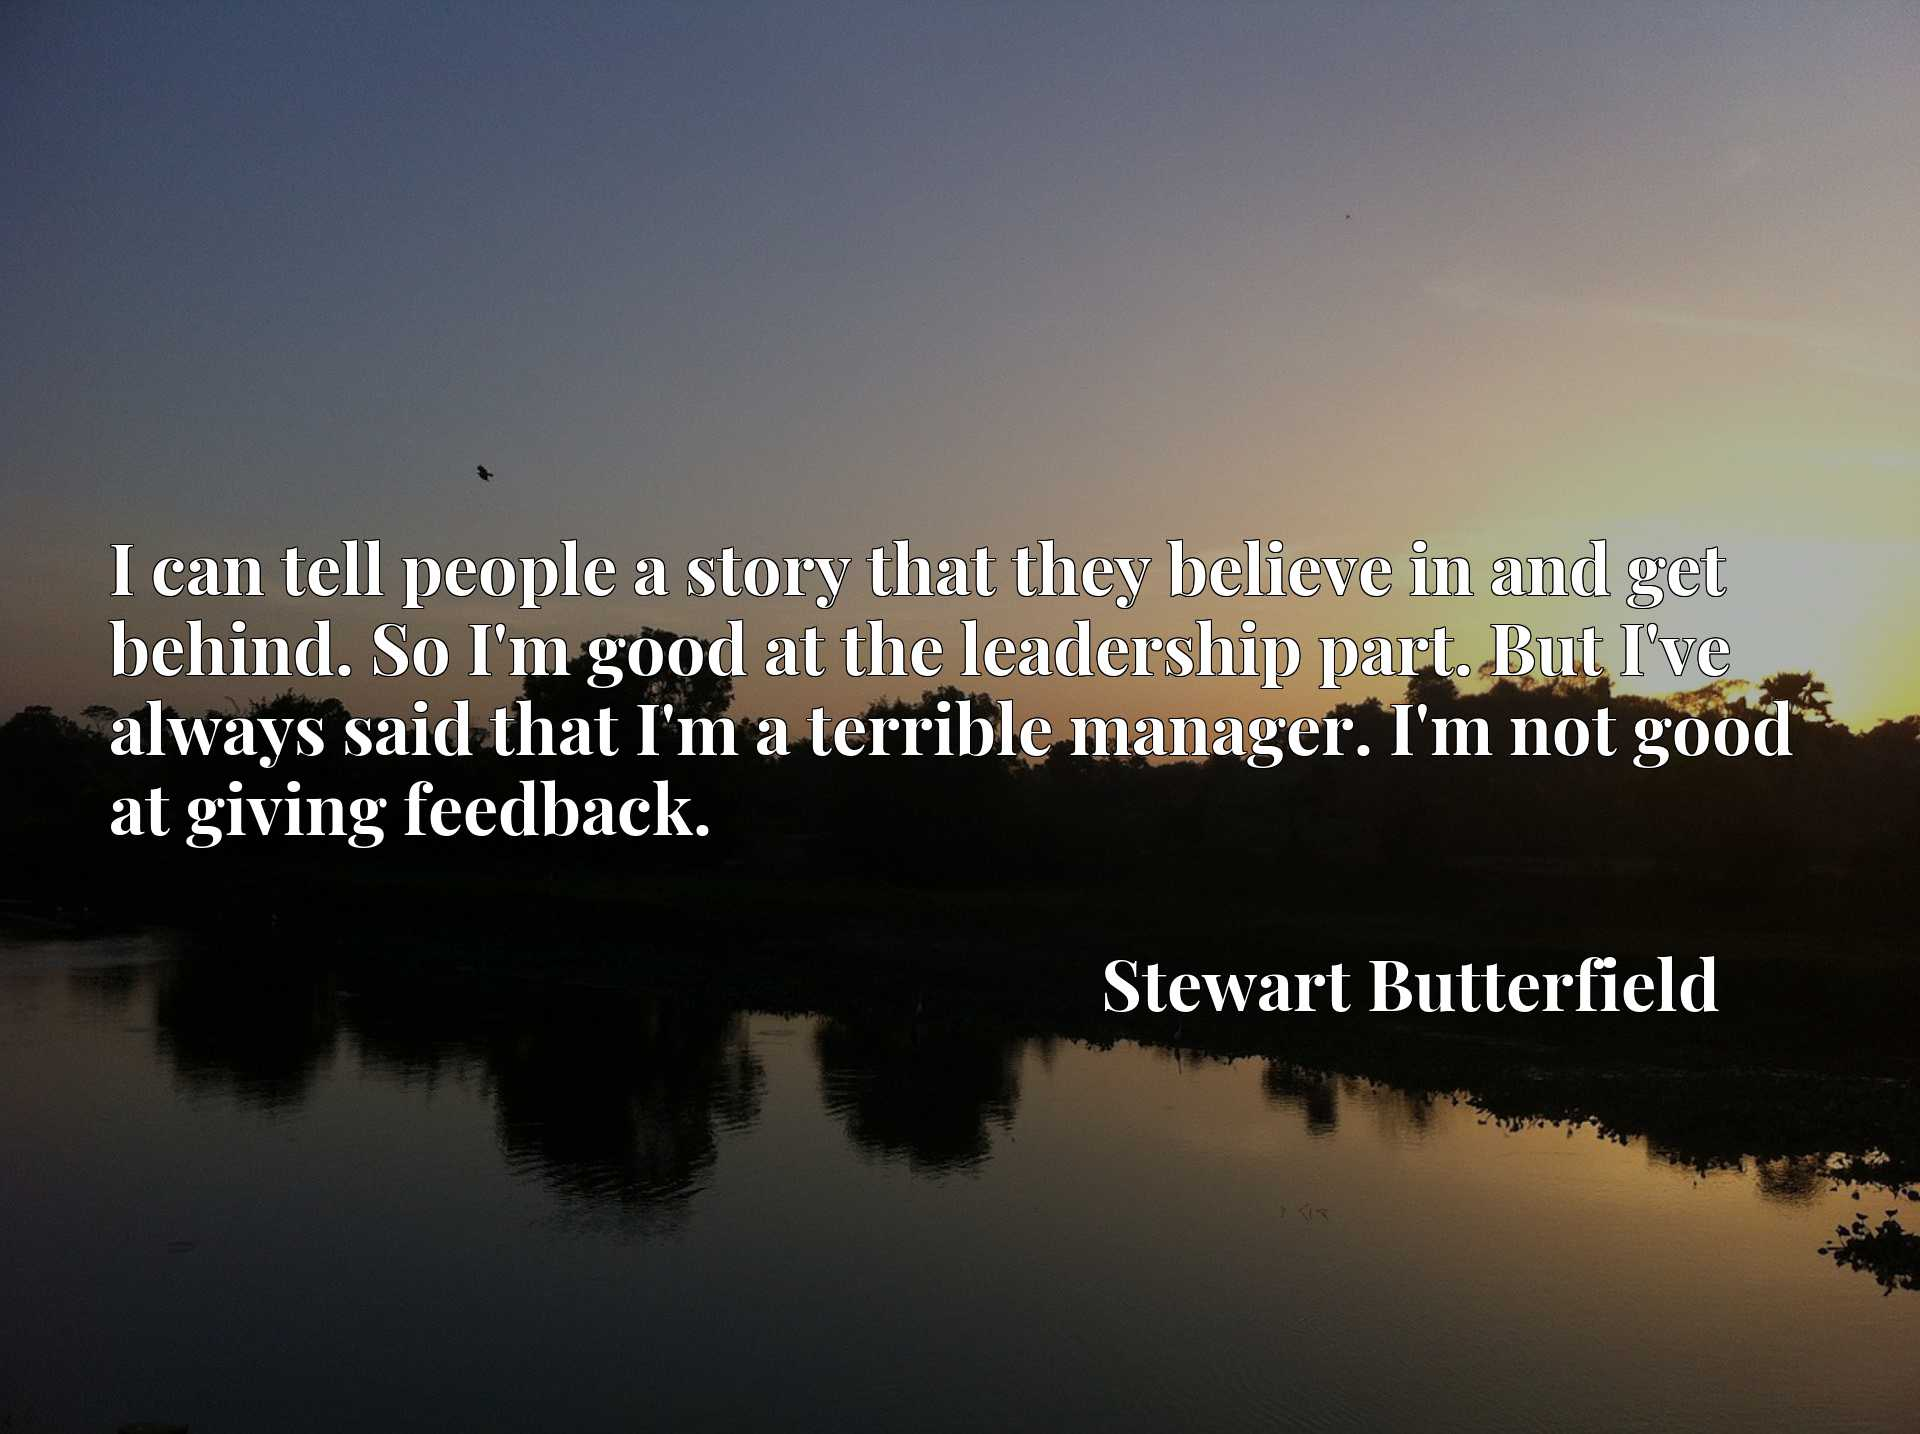 Quote Picture :I can tell people a story that they believe in and get behind. So I'm good at the leadership part. But I've always said that I'm a terrible manager. I'm not good at giving feedback.